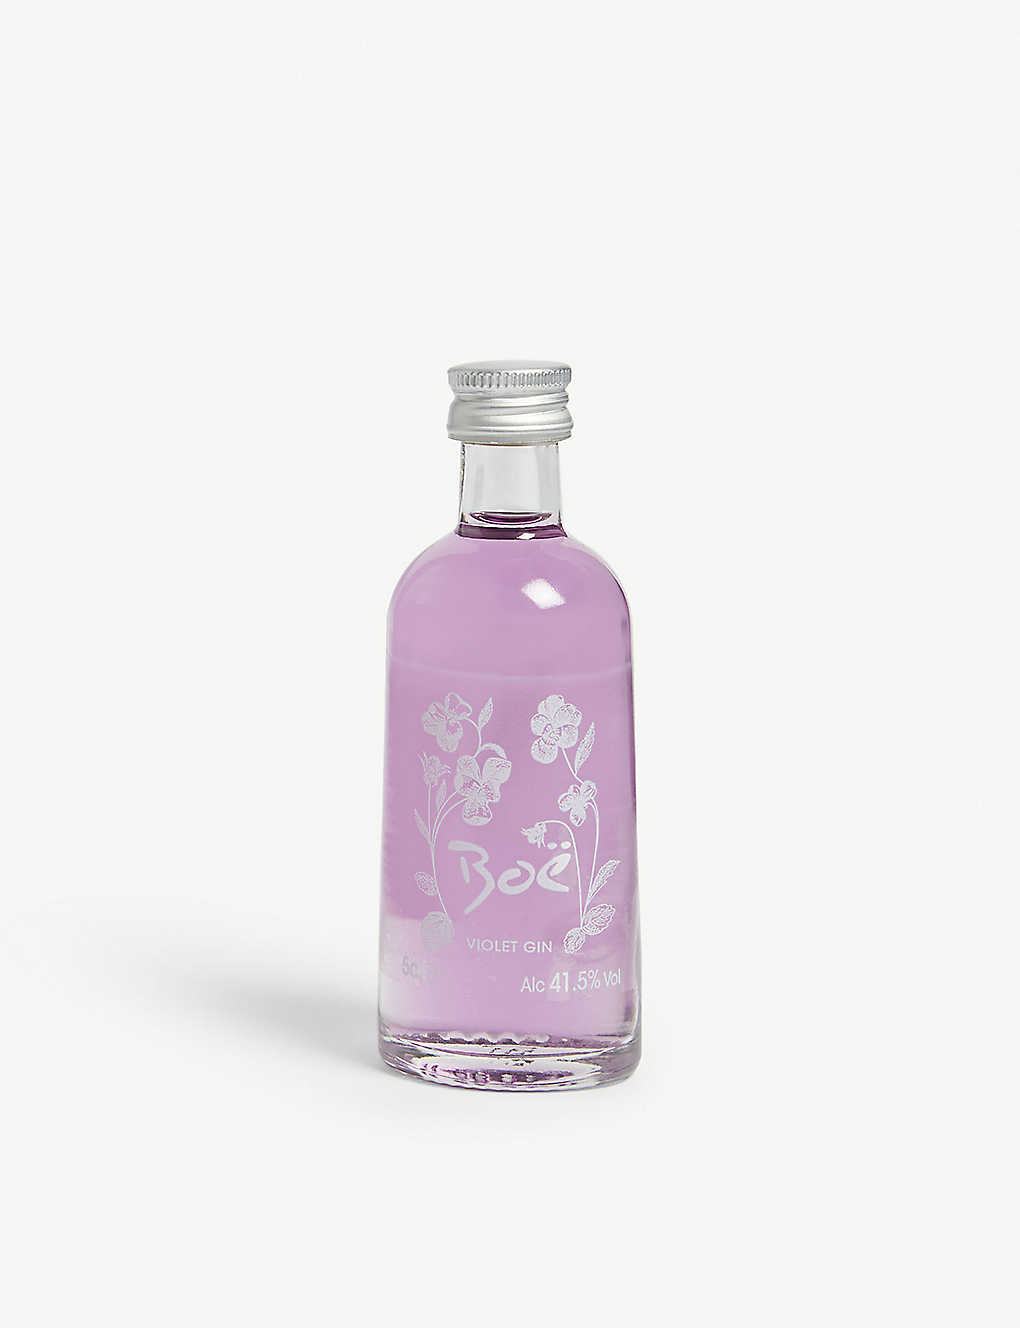 MINI A TURE: Boë Violet Gin 50ml